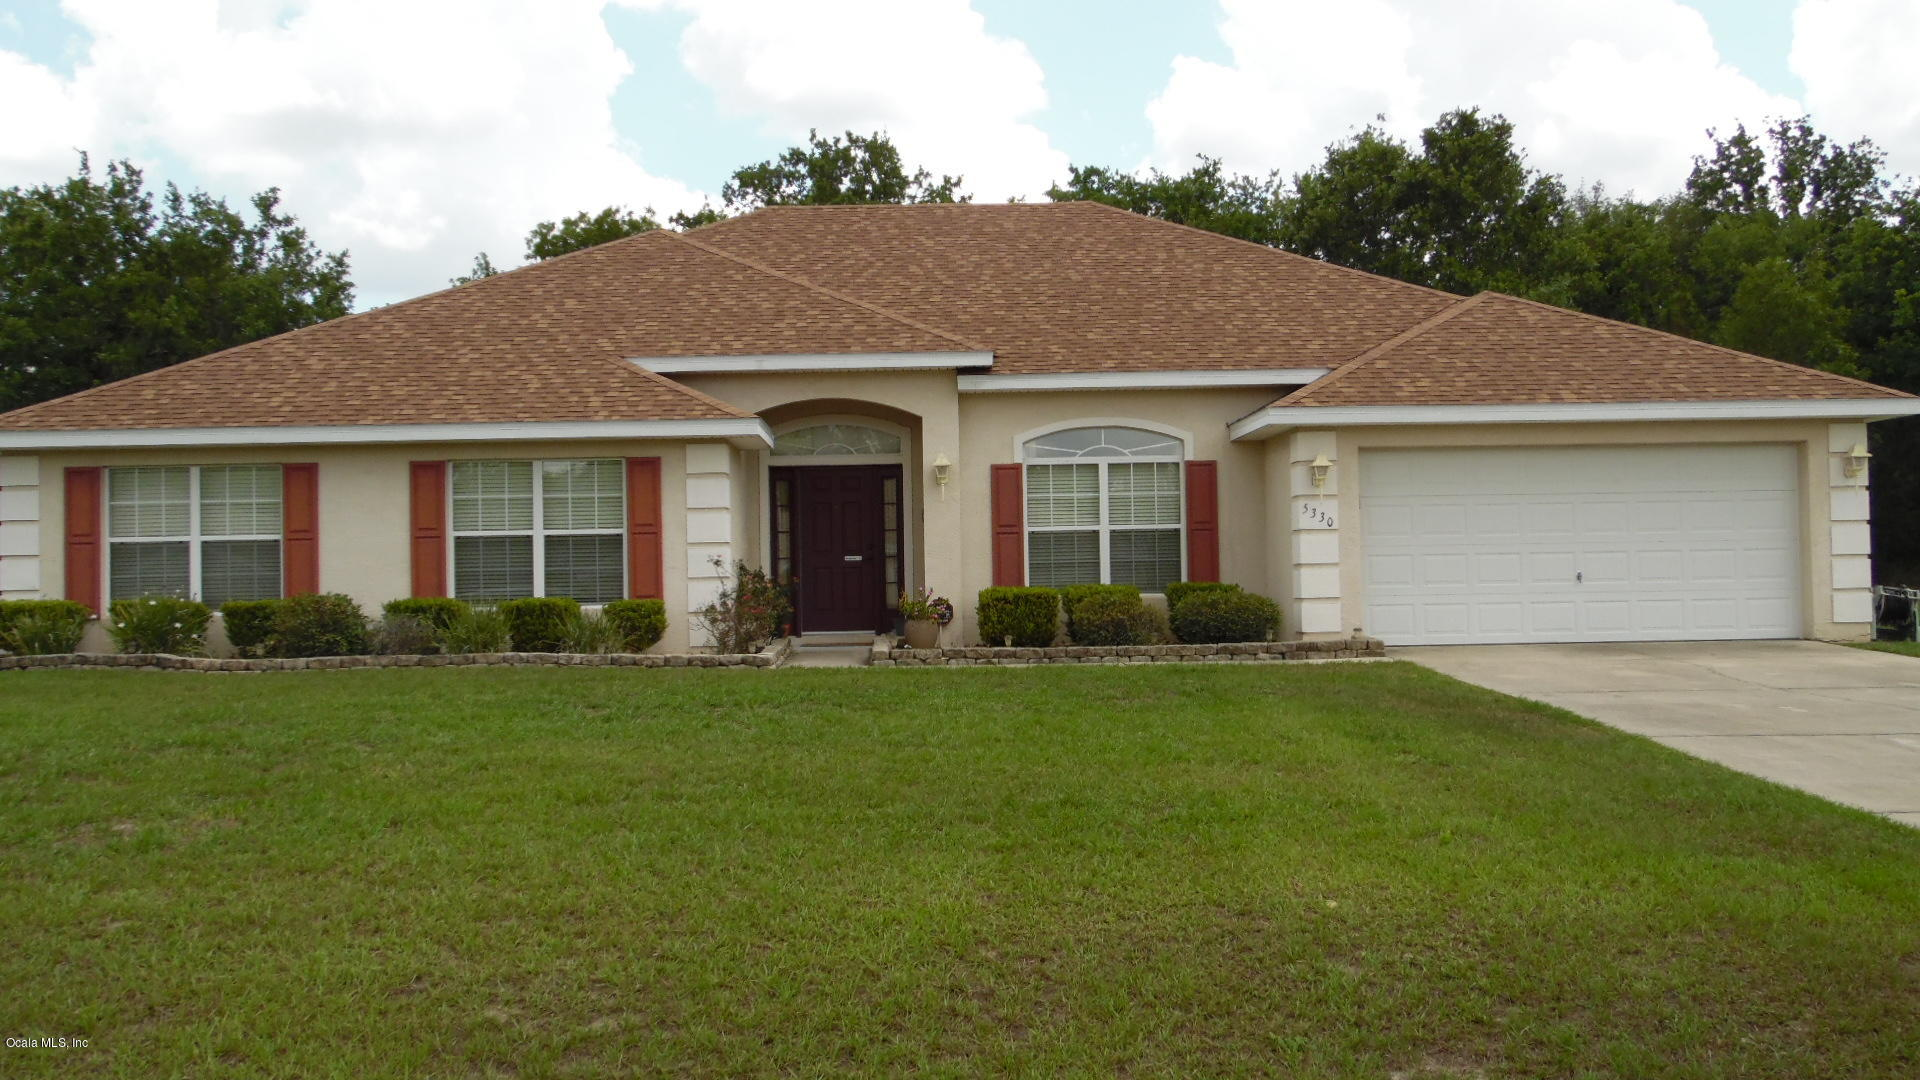 5330 SW 116TH PLACE, OCALA, FL 34476